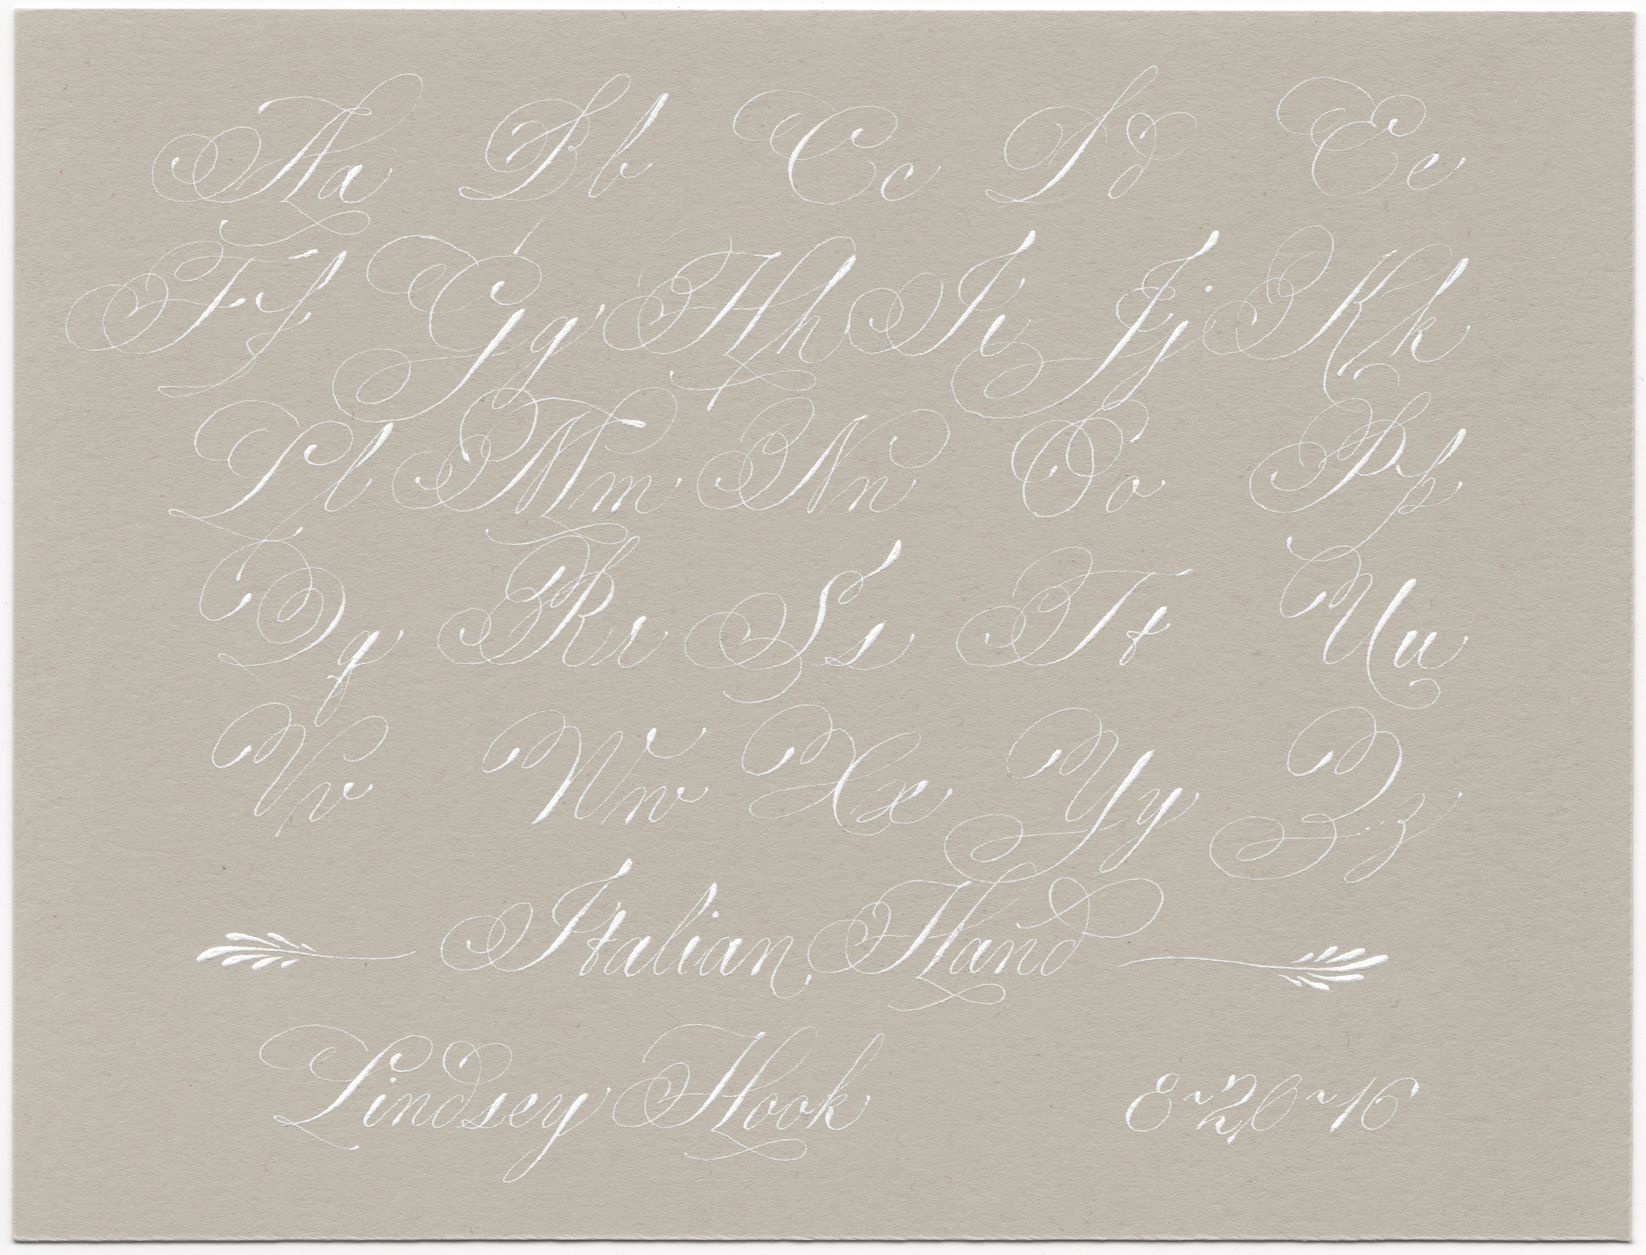 Lindsey Hook Italian Hand Exemplar In Bleed Proof White On Cement Paper Lindseyhook Ita Pointed Pen Calligraphy Lettering Practice Copperplate Calligraphy